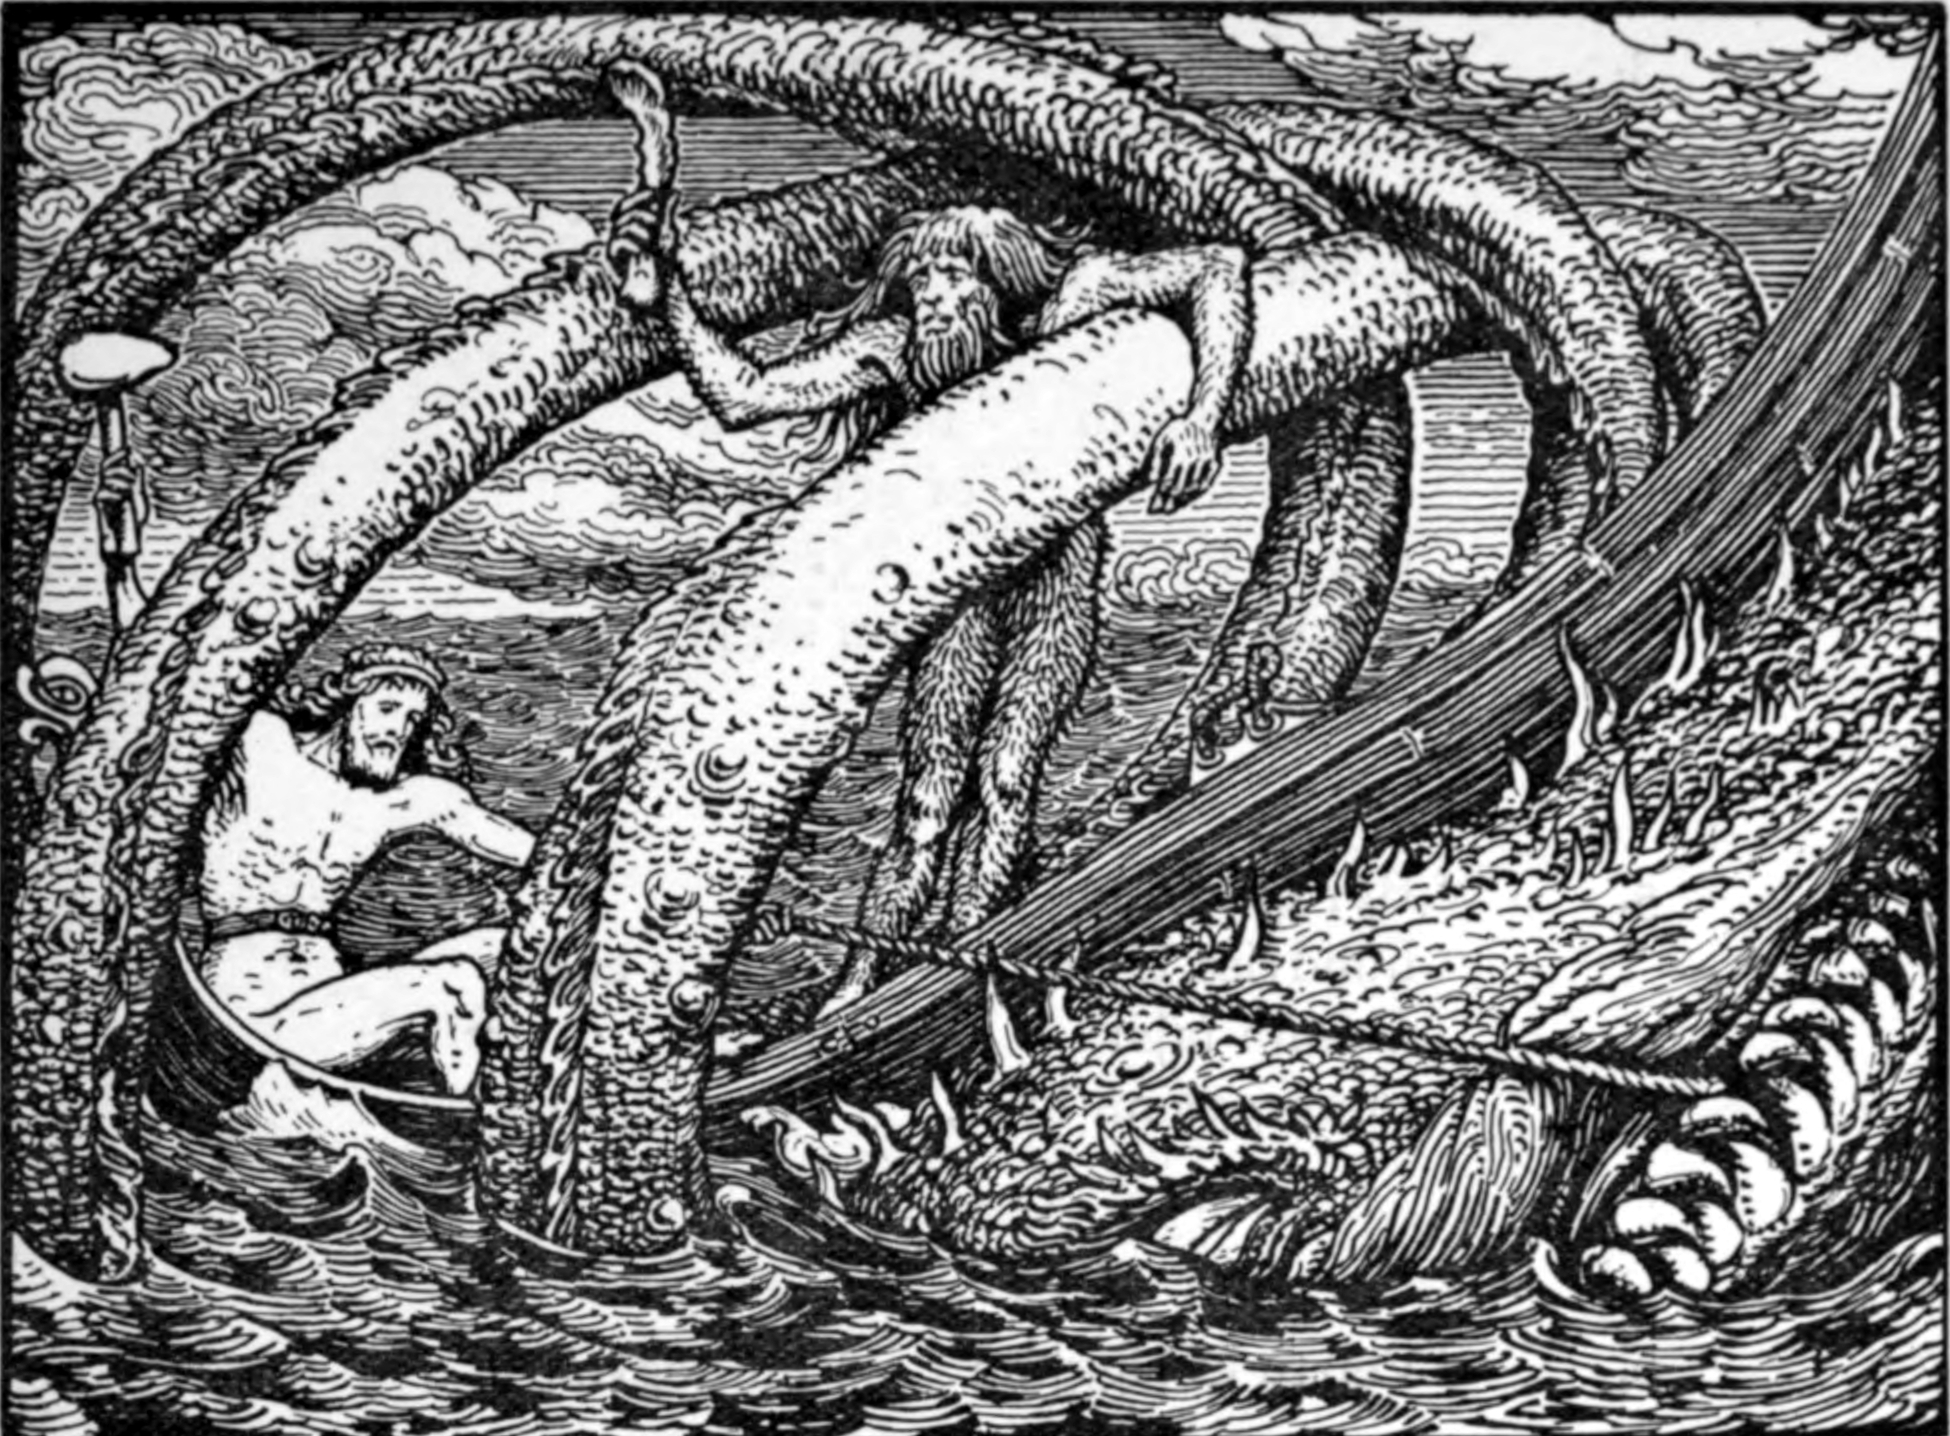 Thor's Fishing Trip  . W.G. Collingwood , 1908.  CC ASA 3.0 . In Norse mythology the Midgard Serpent encircled the world.